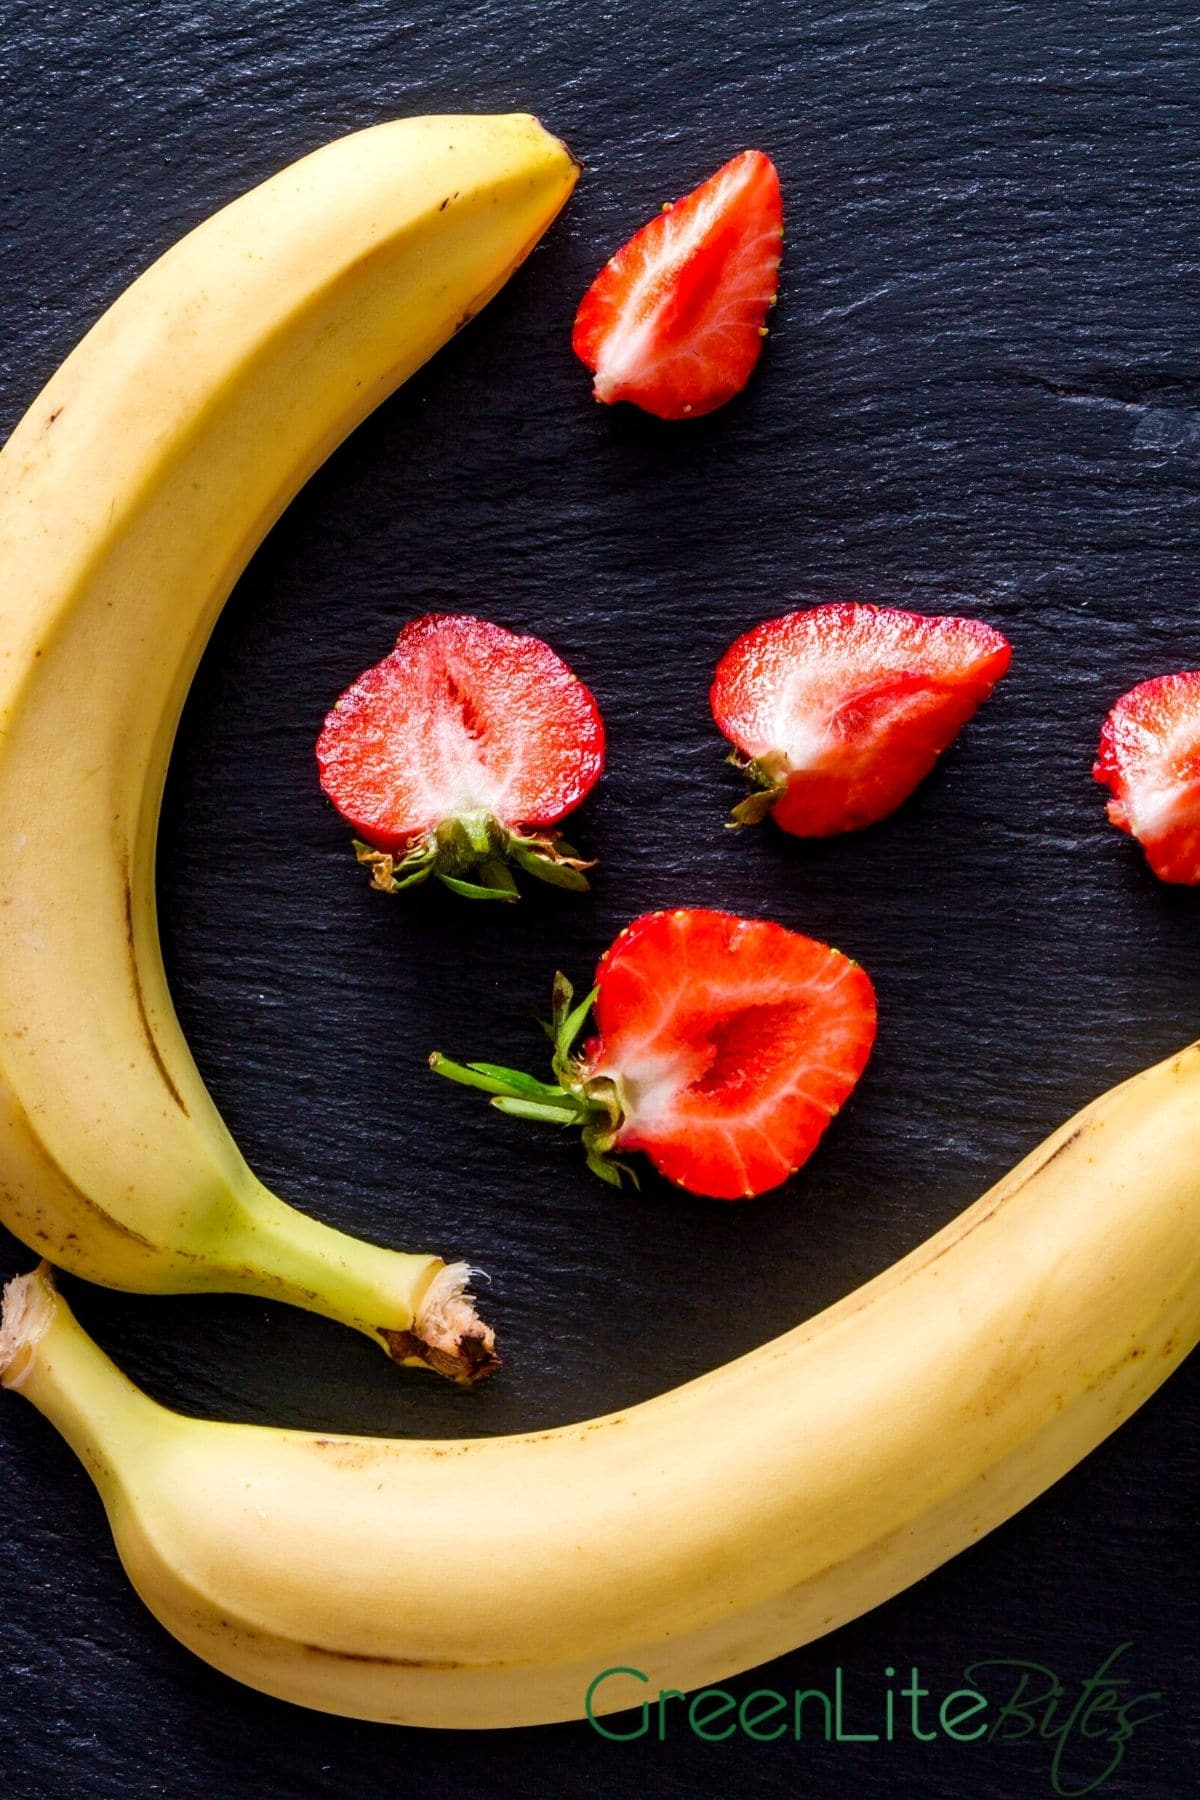 Strawberries and bananas on board